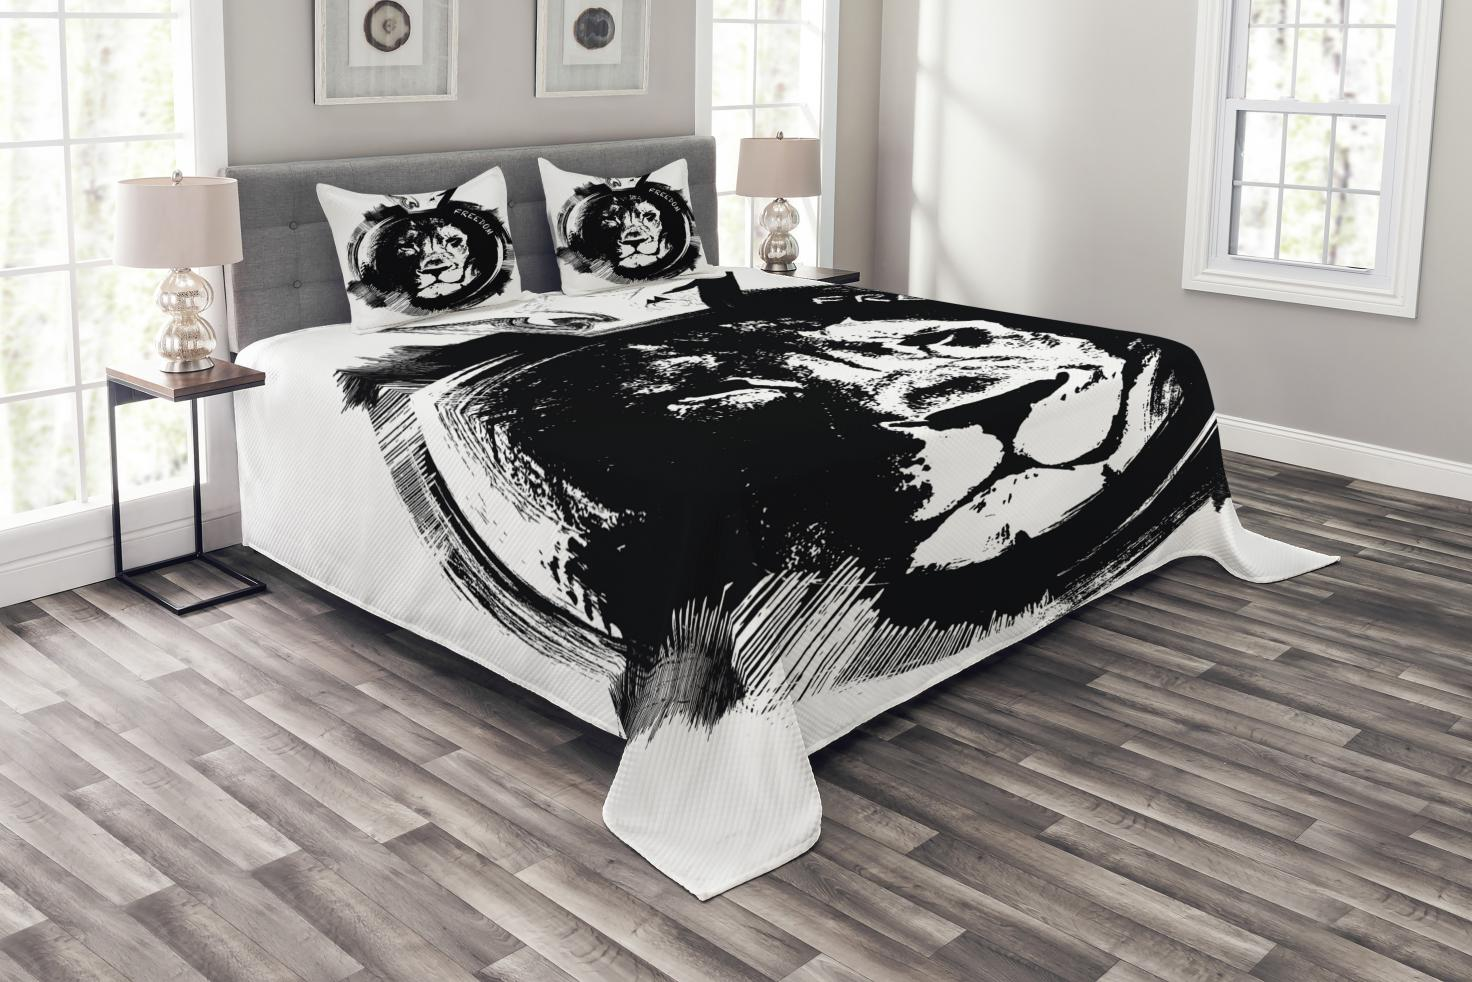 Freedom Bed Head Lion Bedspread Set King Of The Forest Lion Head Portrait Freedom Sketchy Monochrome Wild Animal Decorative Quilted Coverlet Set With Pillow Shams